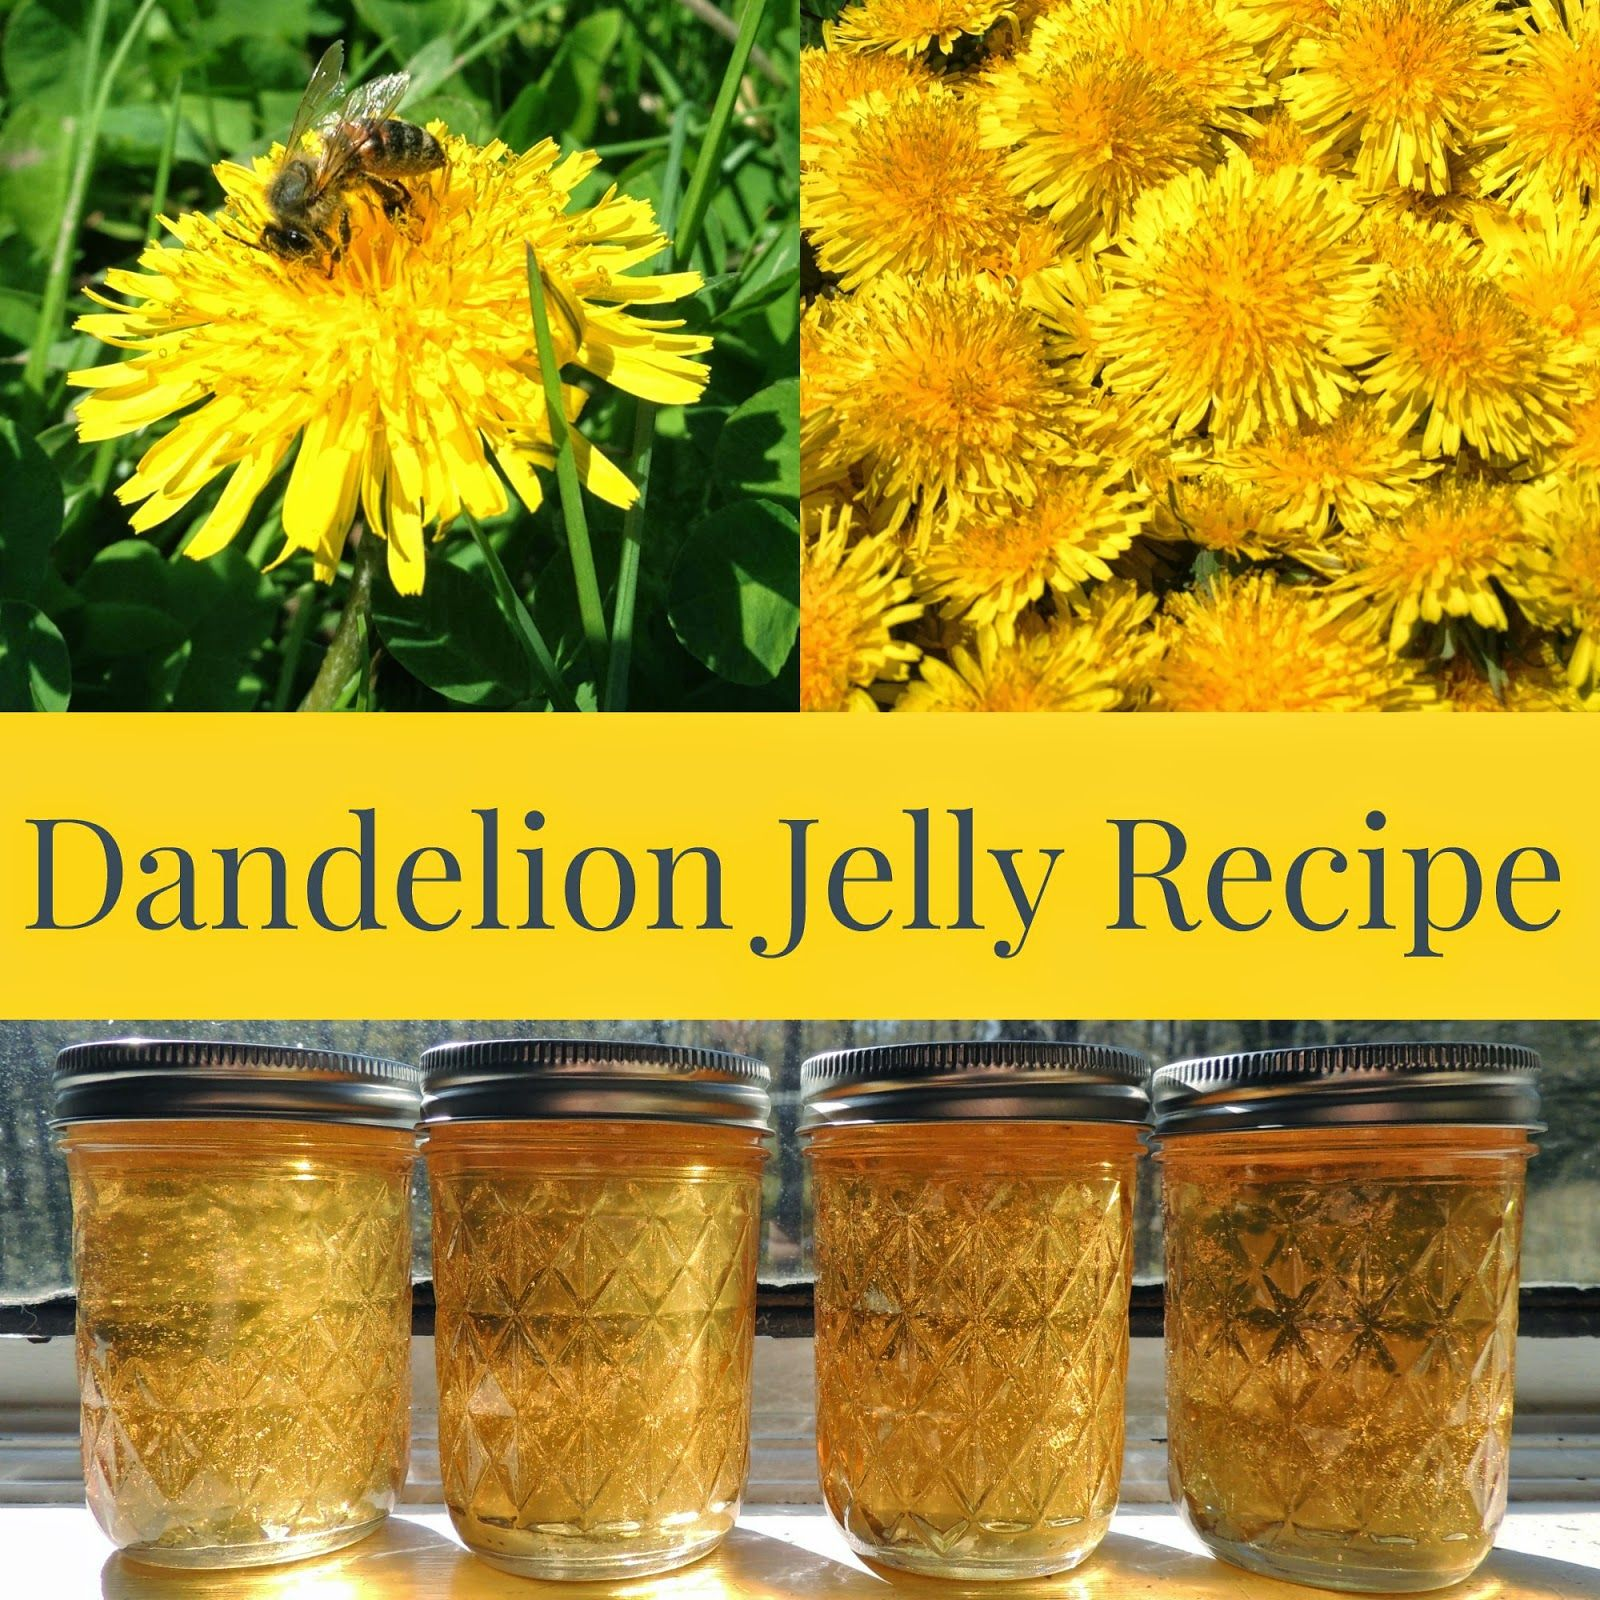 12 Flower Shaped Recipes Desserts Candydirect Com Jelly Recipes Dandelion Recipes Dandelion Jelly